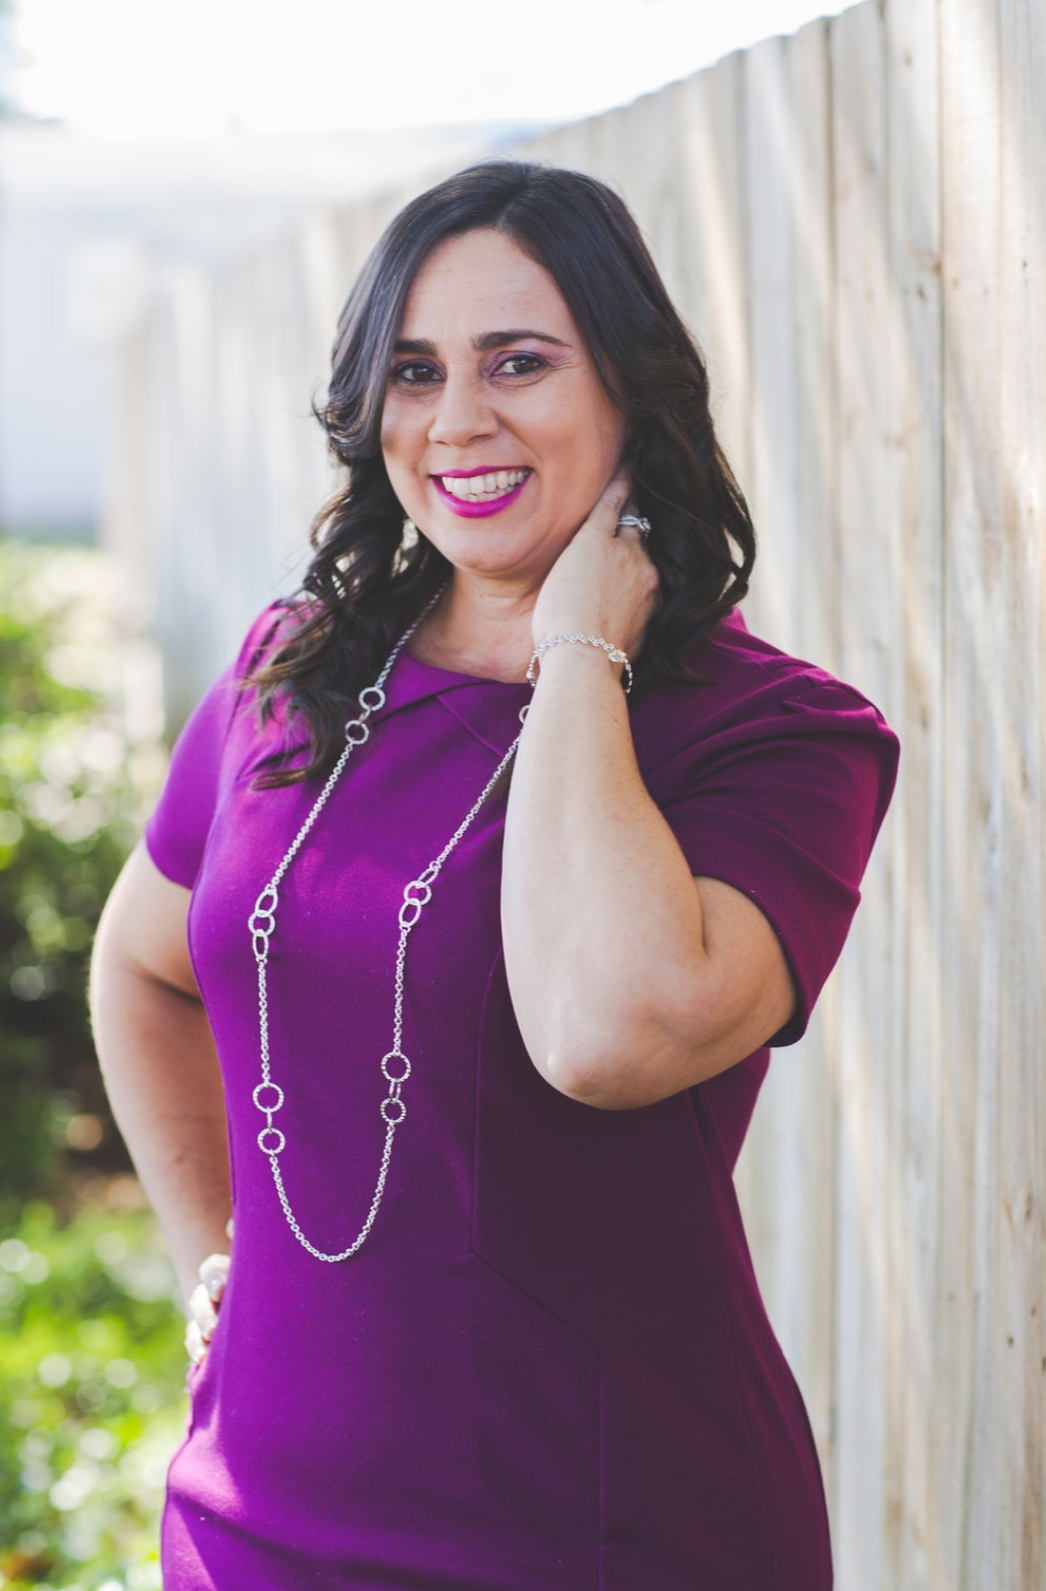 Maestra Bianca - Fort Worth Teacher